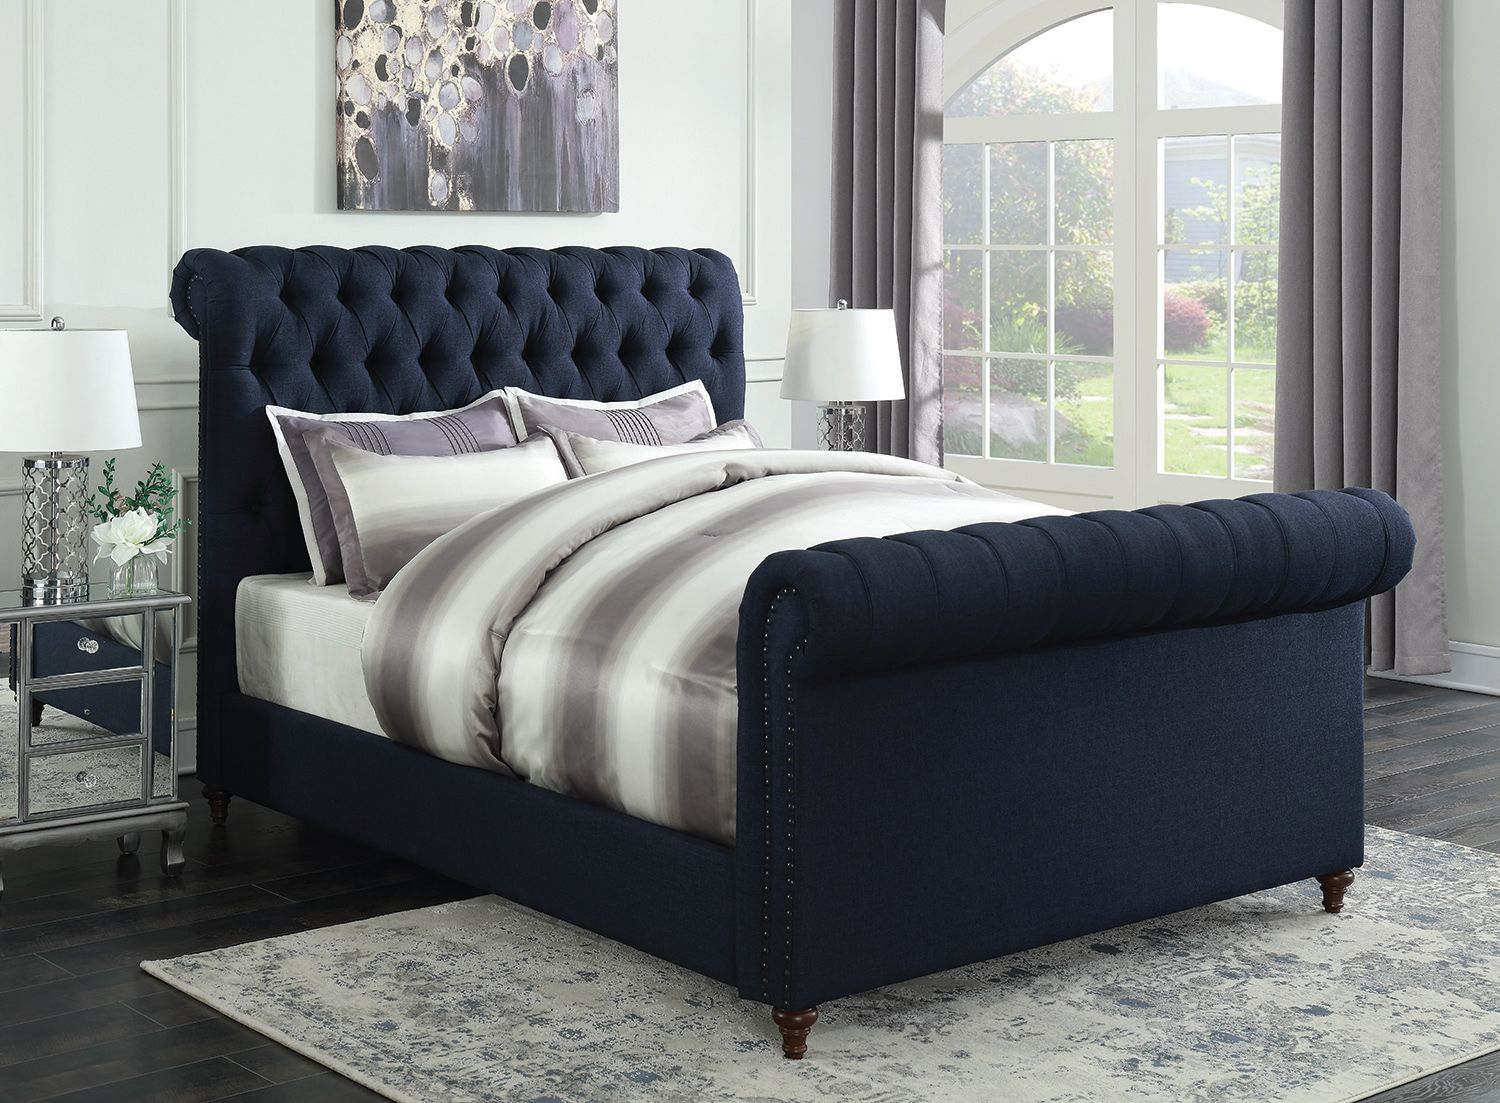 Gresham Navy Blue Woven Fabric Cal King Bed W Scrolled Tufted Headboard Bedroom Set Atmosphere Ideas Royal Color Cobalt Midnight Dark Dress Shades Of Apppie Org